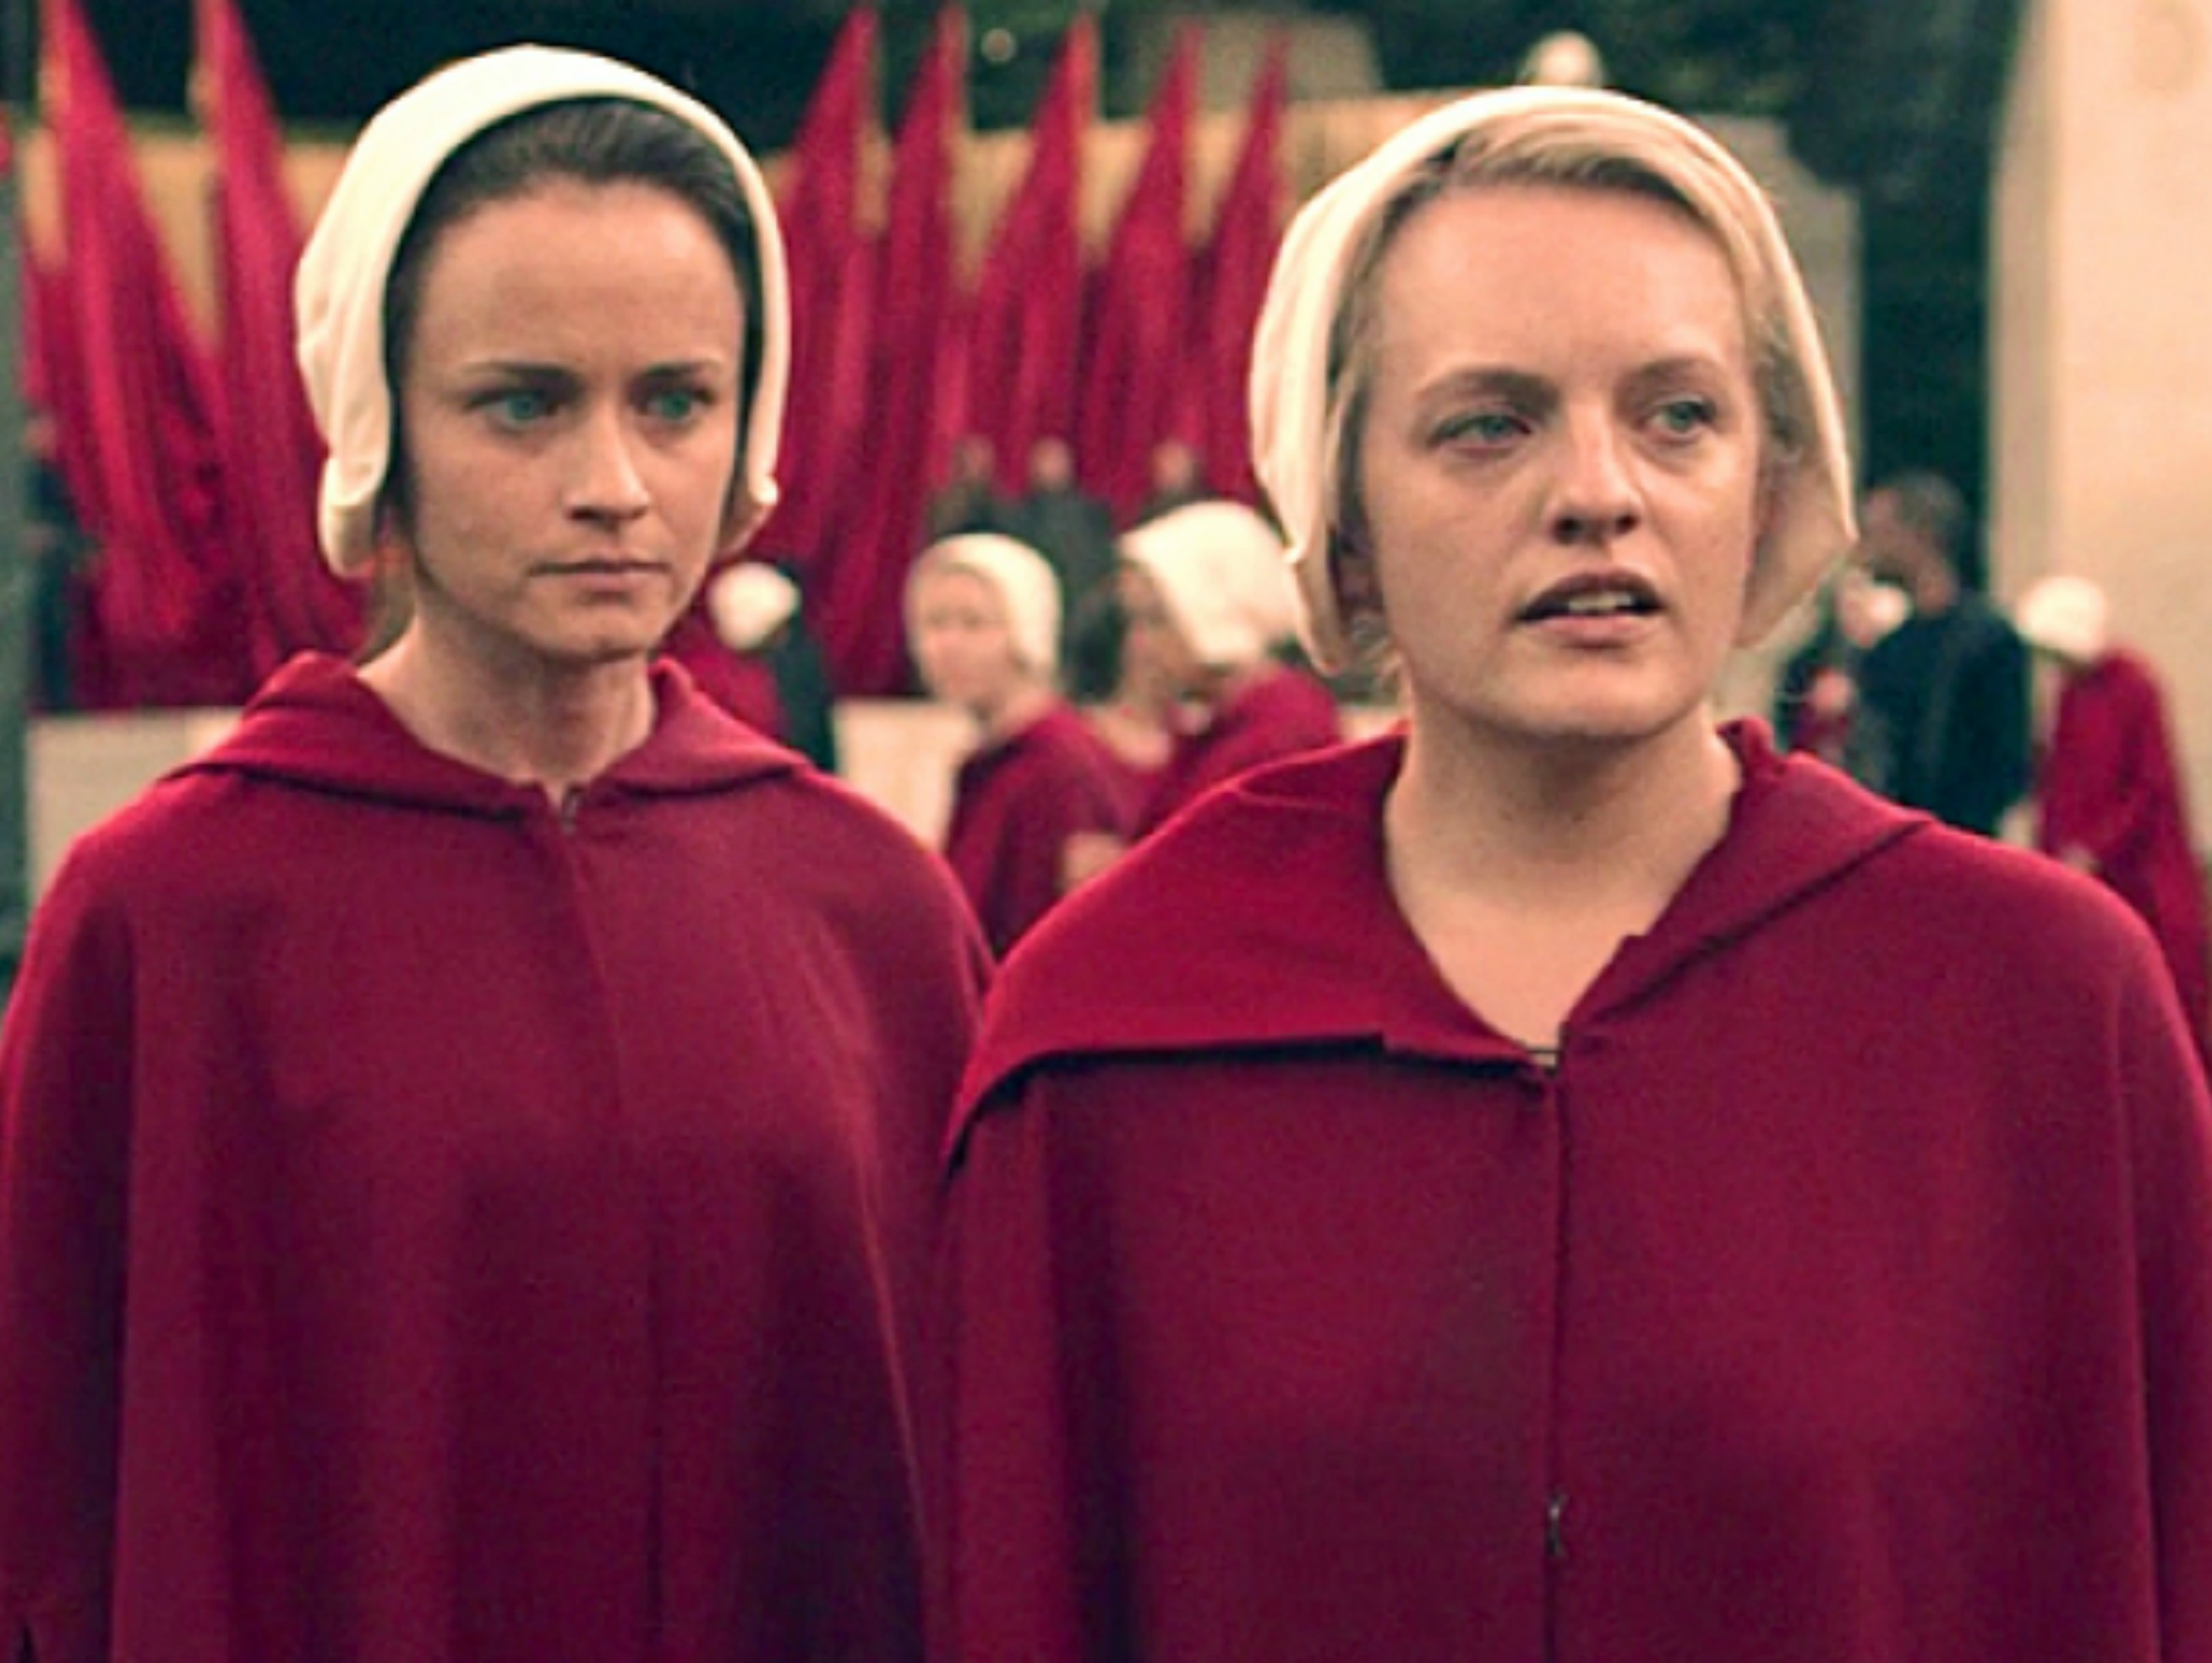 The New HANDMAID'S TALE Trailer is Harrowing AF